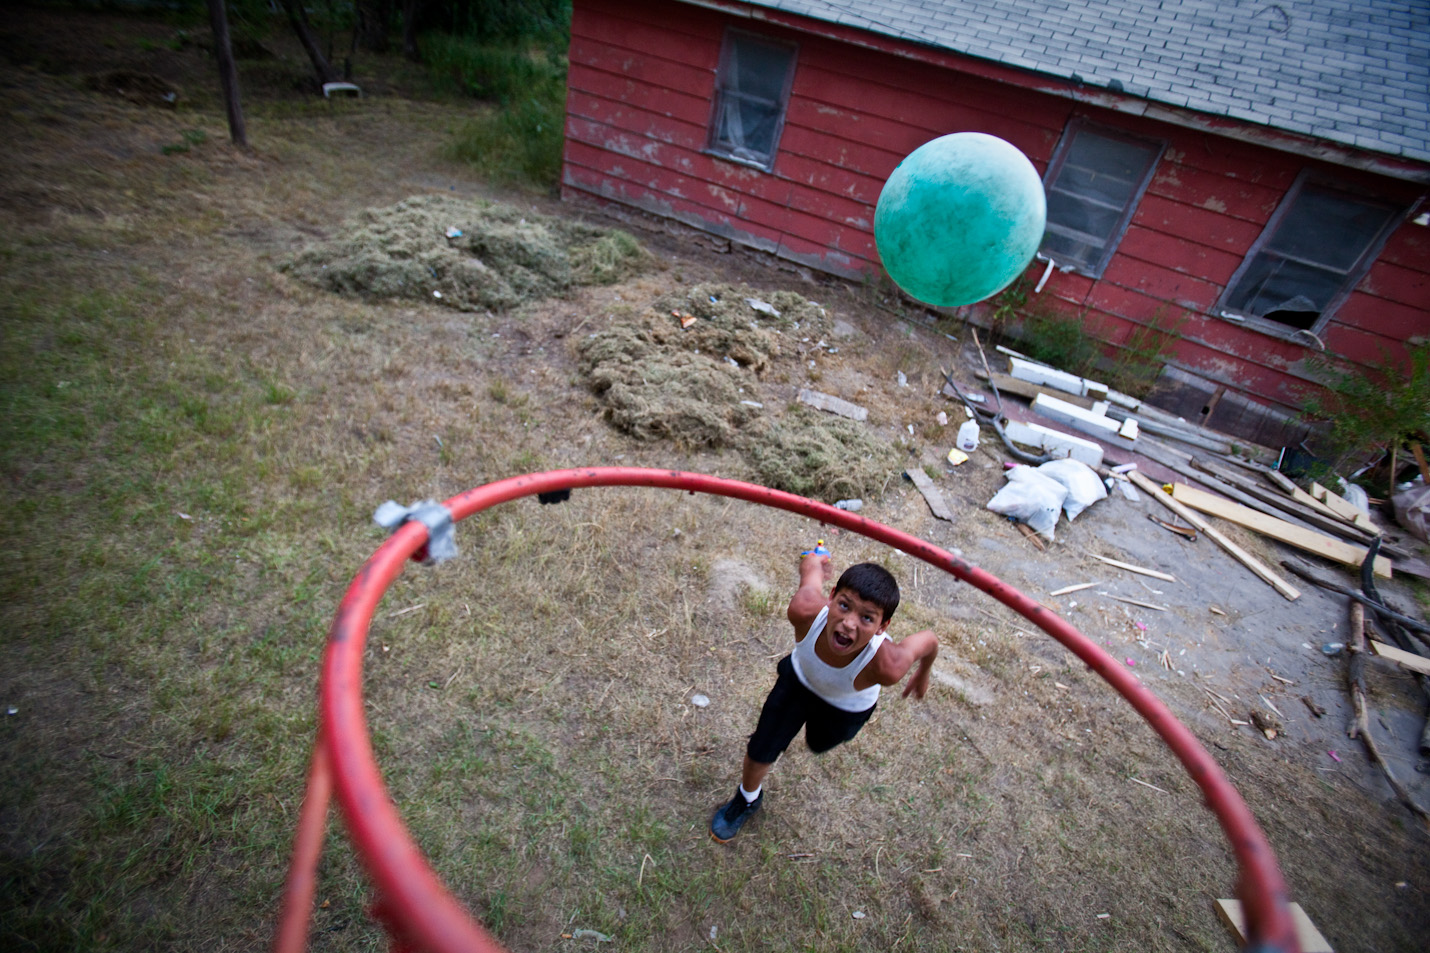 Jordan Anduja plays basketball in his uncle's front yard on the Pine Ridge Reservation in Pine Ridge, South Dakota on Tuesday, July 28, 2009.